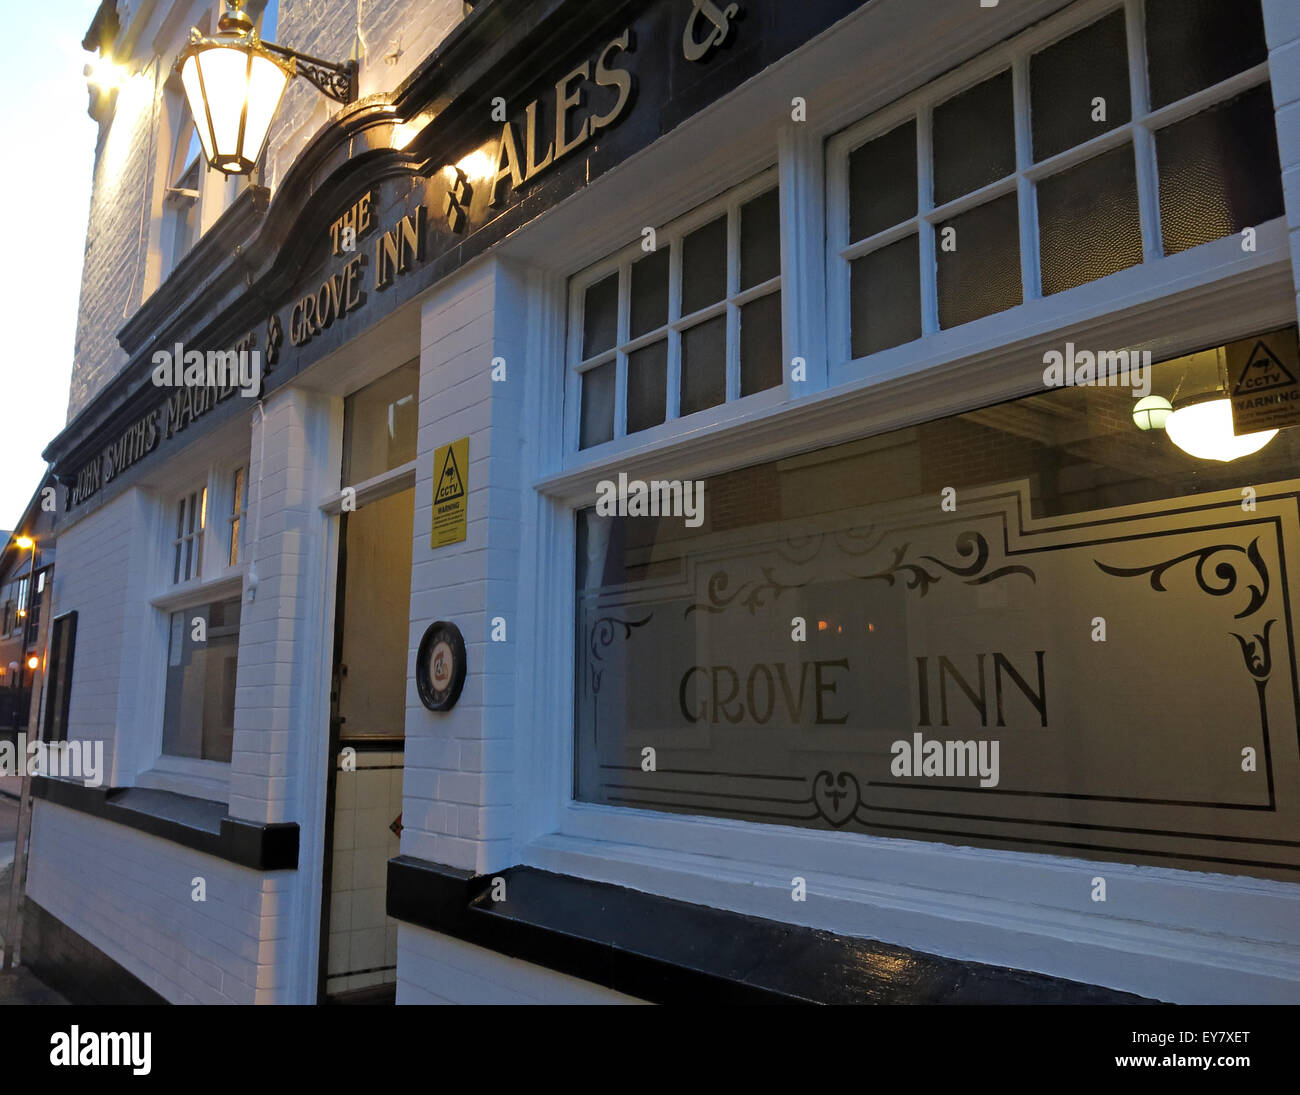 real,ale,CAMRA,bar,drink,drinkers,traditional,history,historic,Grove,Inn,Pub,Back,Row,West,Yorkshire,England,UK,English,GB,Great,Britain,British,city,centre,granary,John,Smiths,Magnet,Ales,LS115PL,LS11 5PL,dusk,night,entrance,Real Ale,Old Pub,John Smiths,Magnet Ales,LS11 5PL,GoTonySmith,Buy Pictures of,Buy Images Of